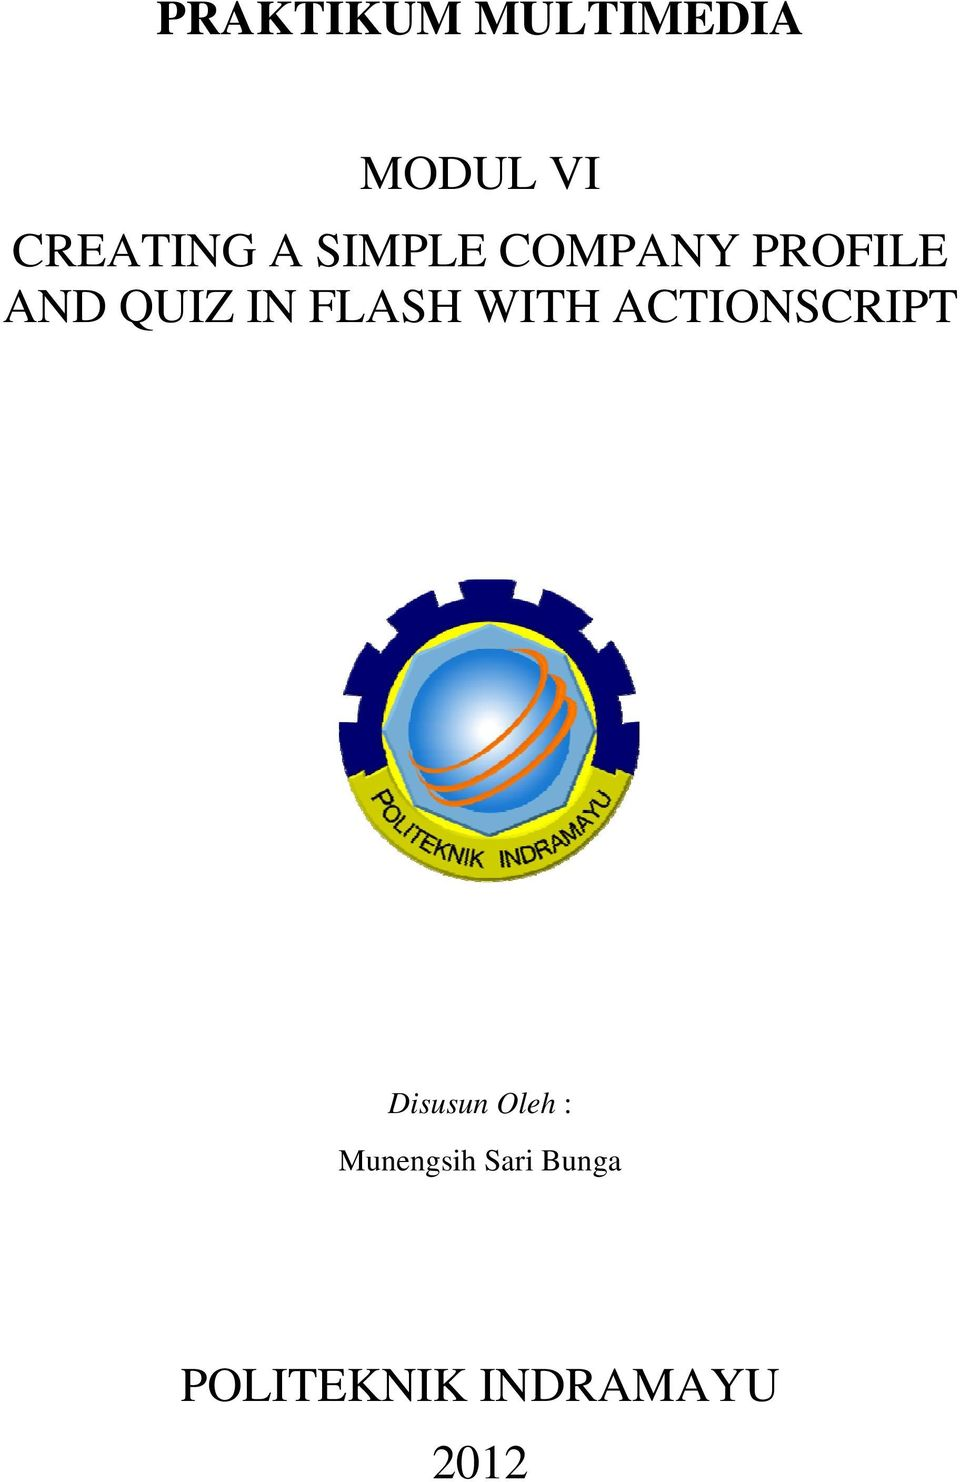 AND QUIZ IN FLASH WITH